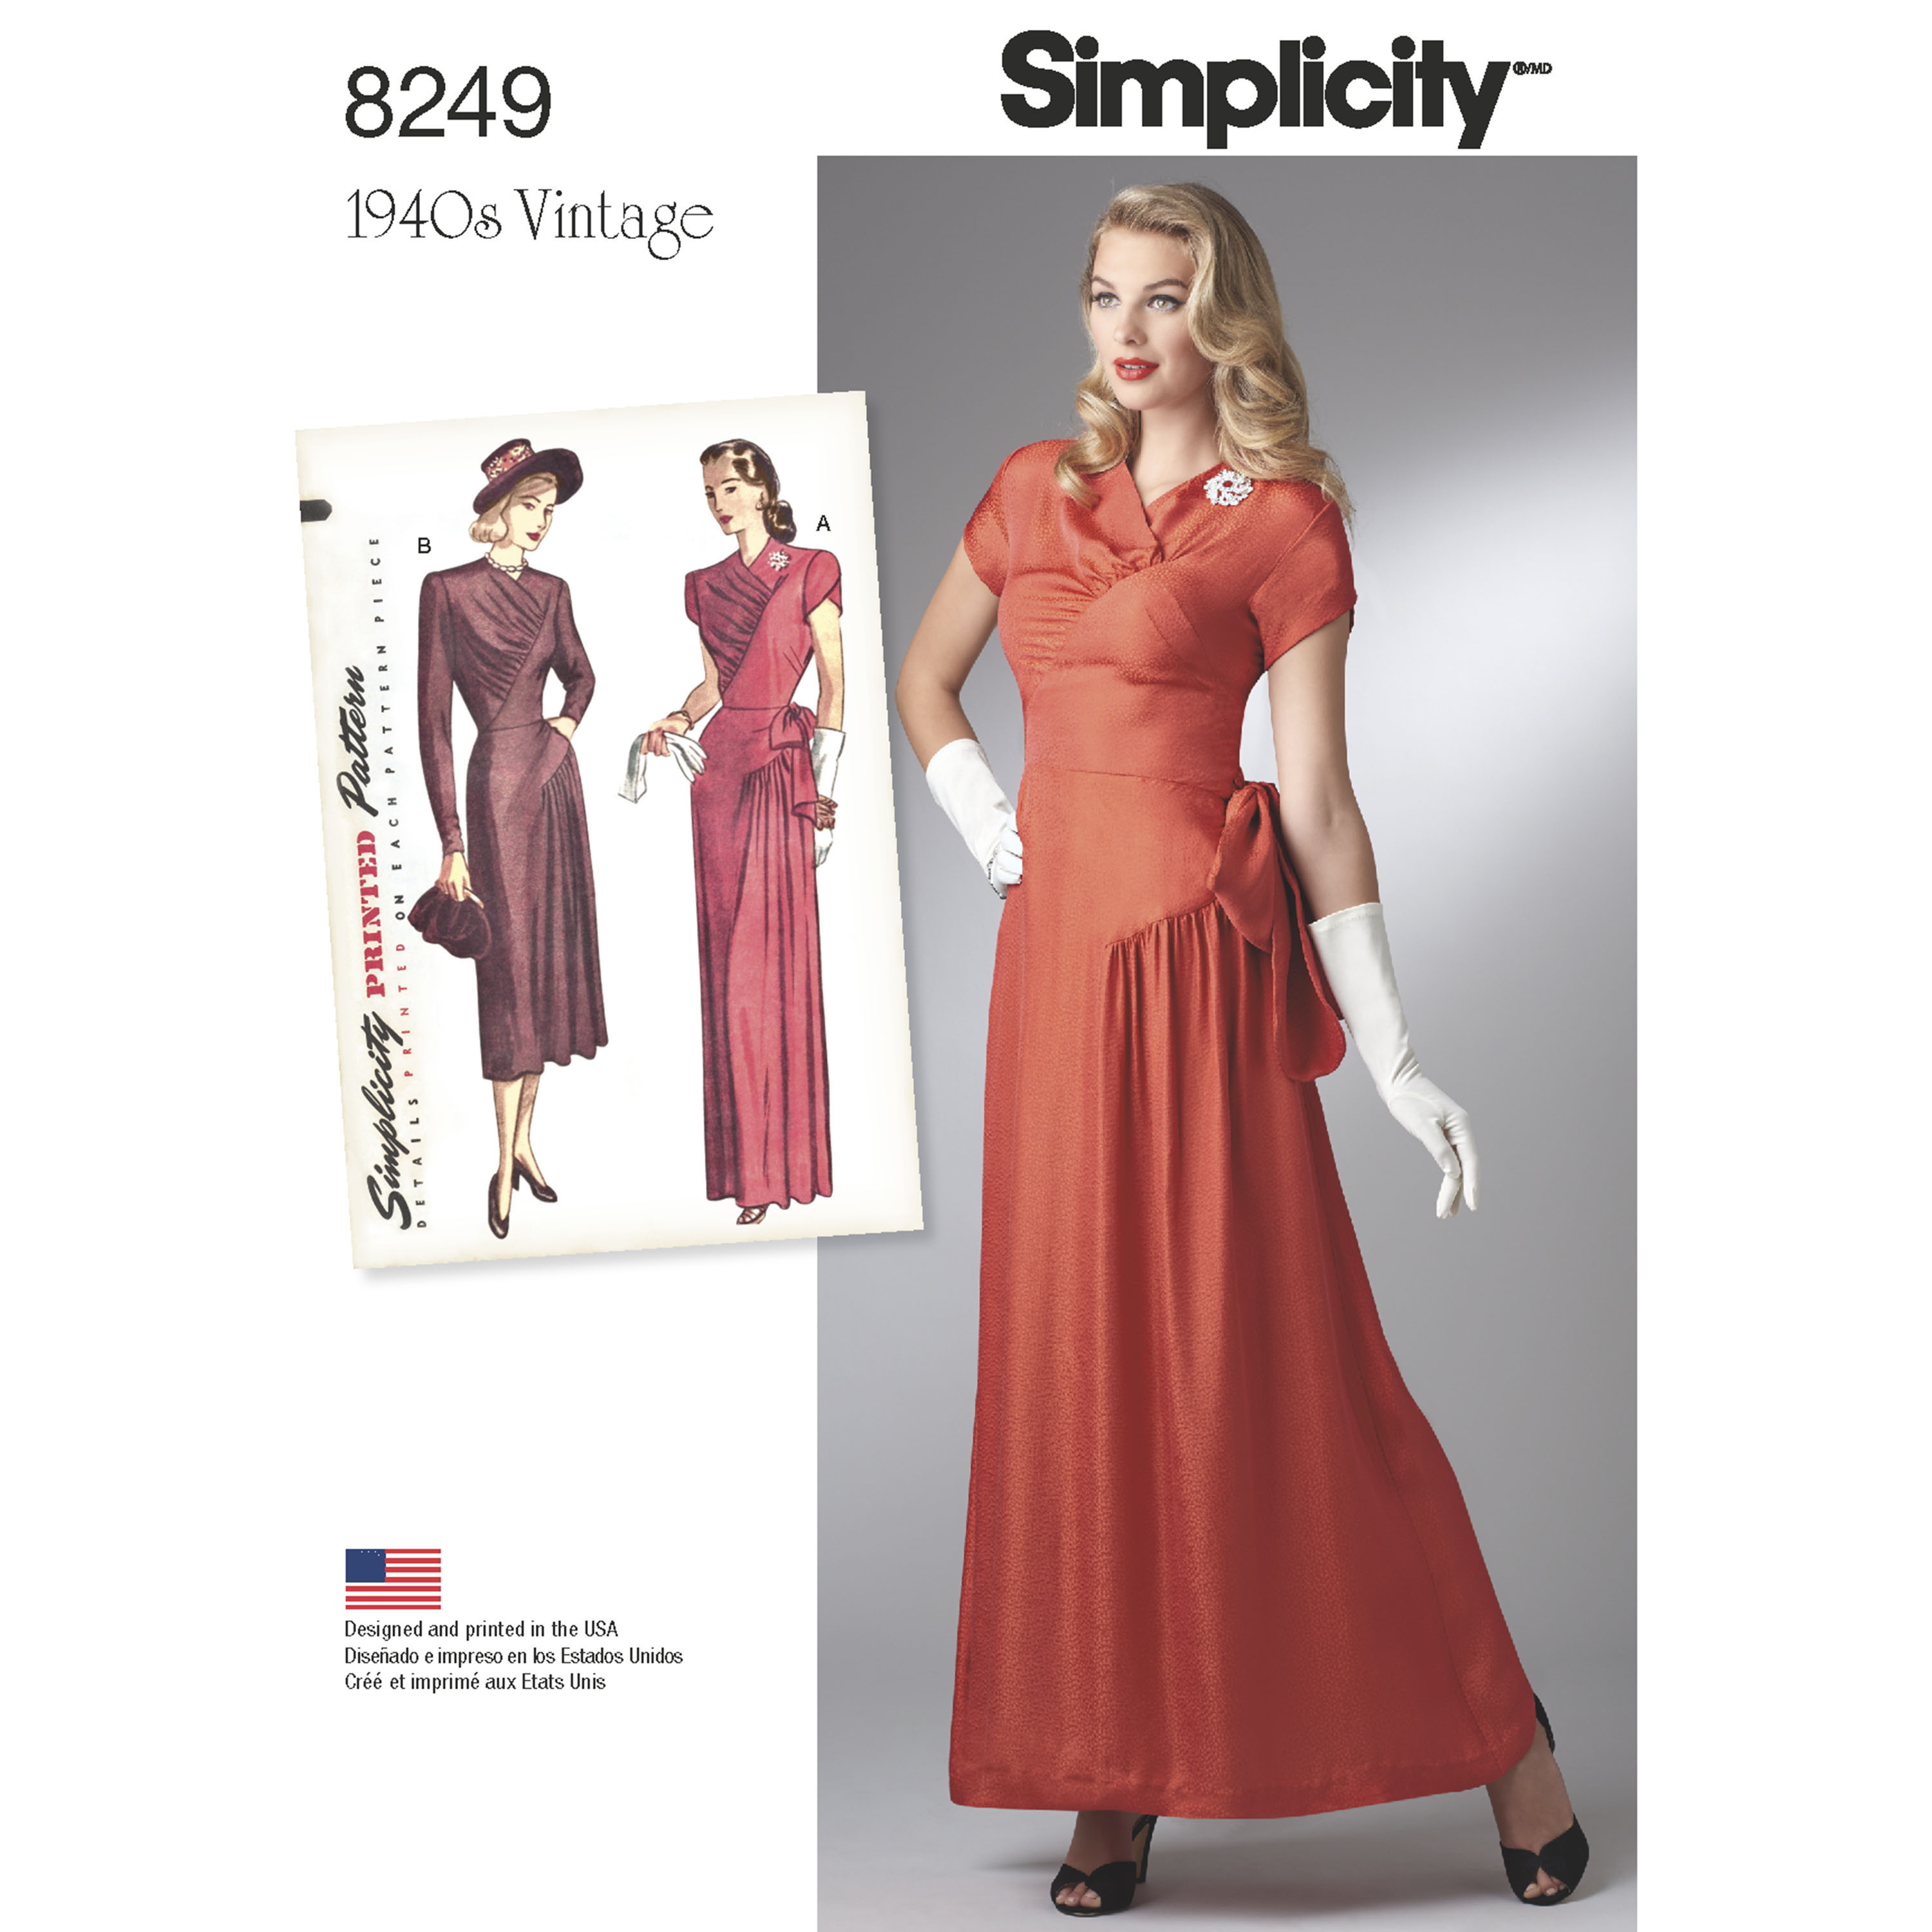 Simplicity Simplicity Pattern 8249 Misses\' Vintage 1940\'s Gown and Dress